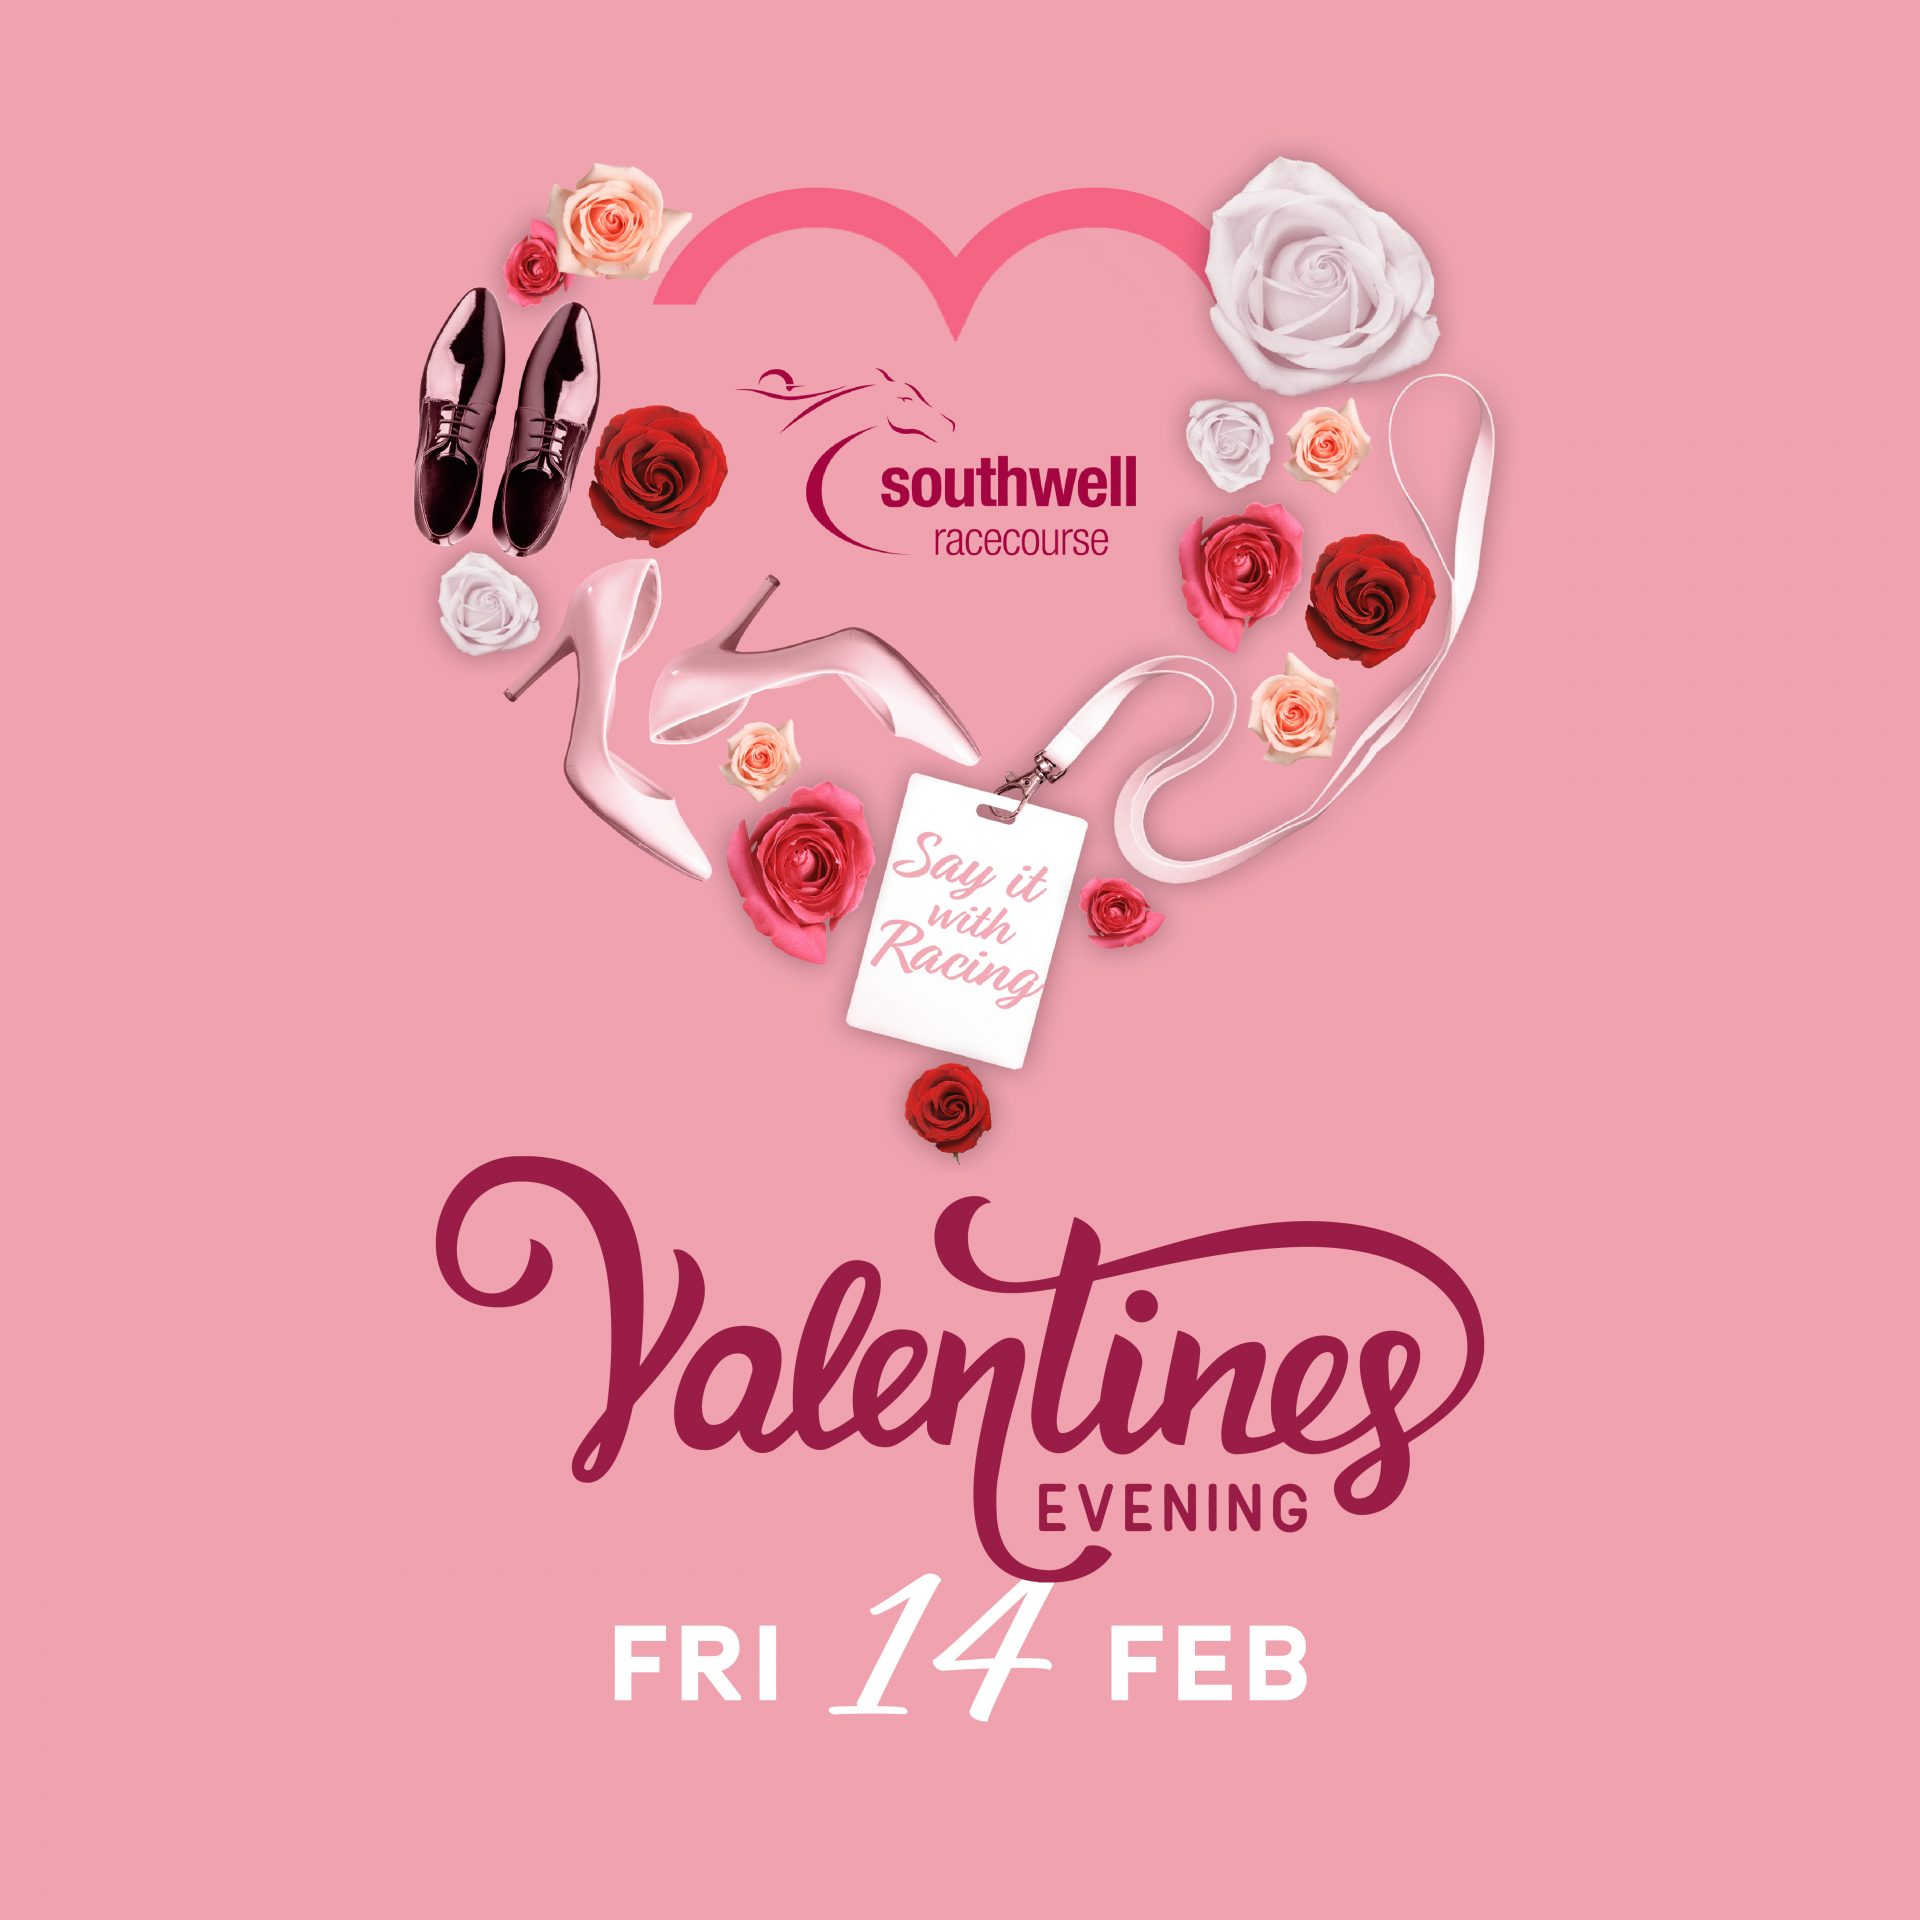 Valentines Day event at Southwell Racecourse poster